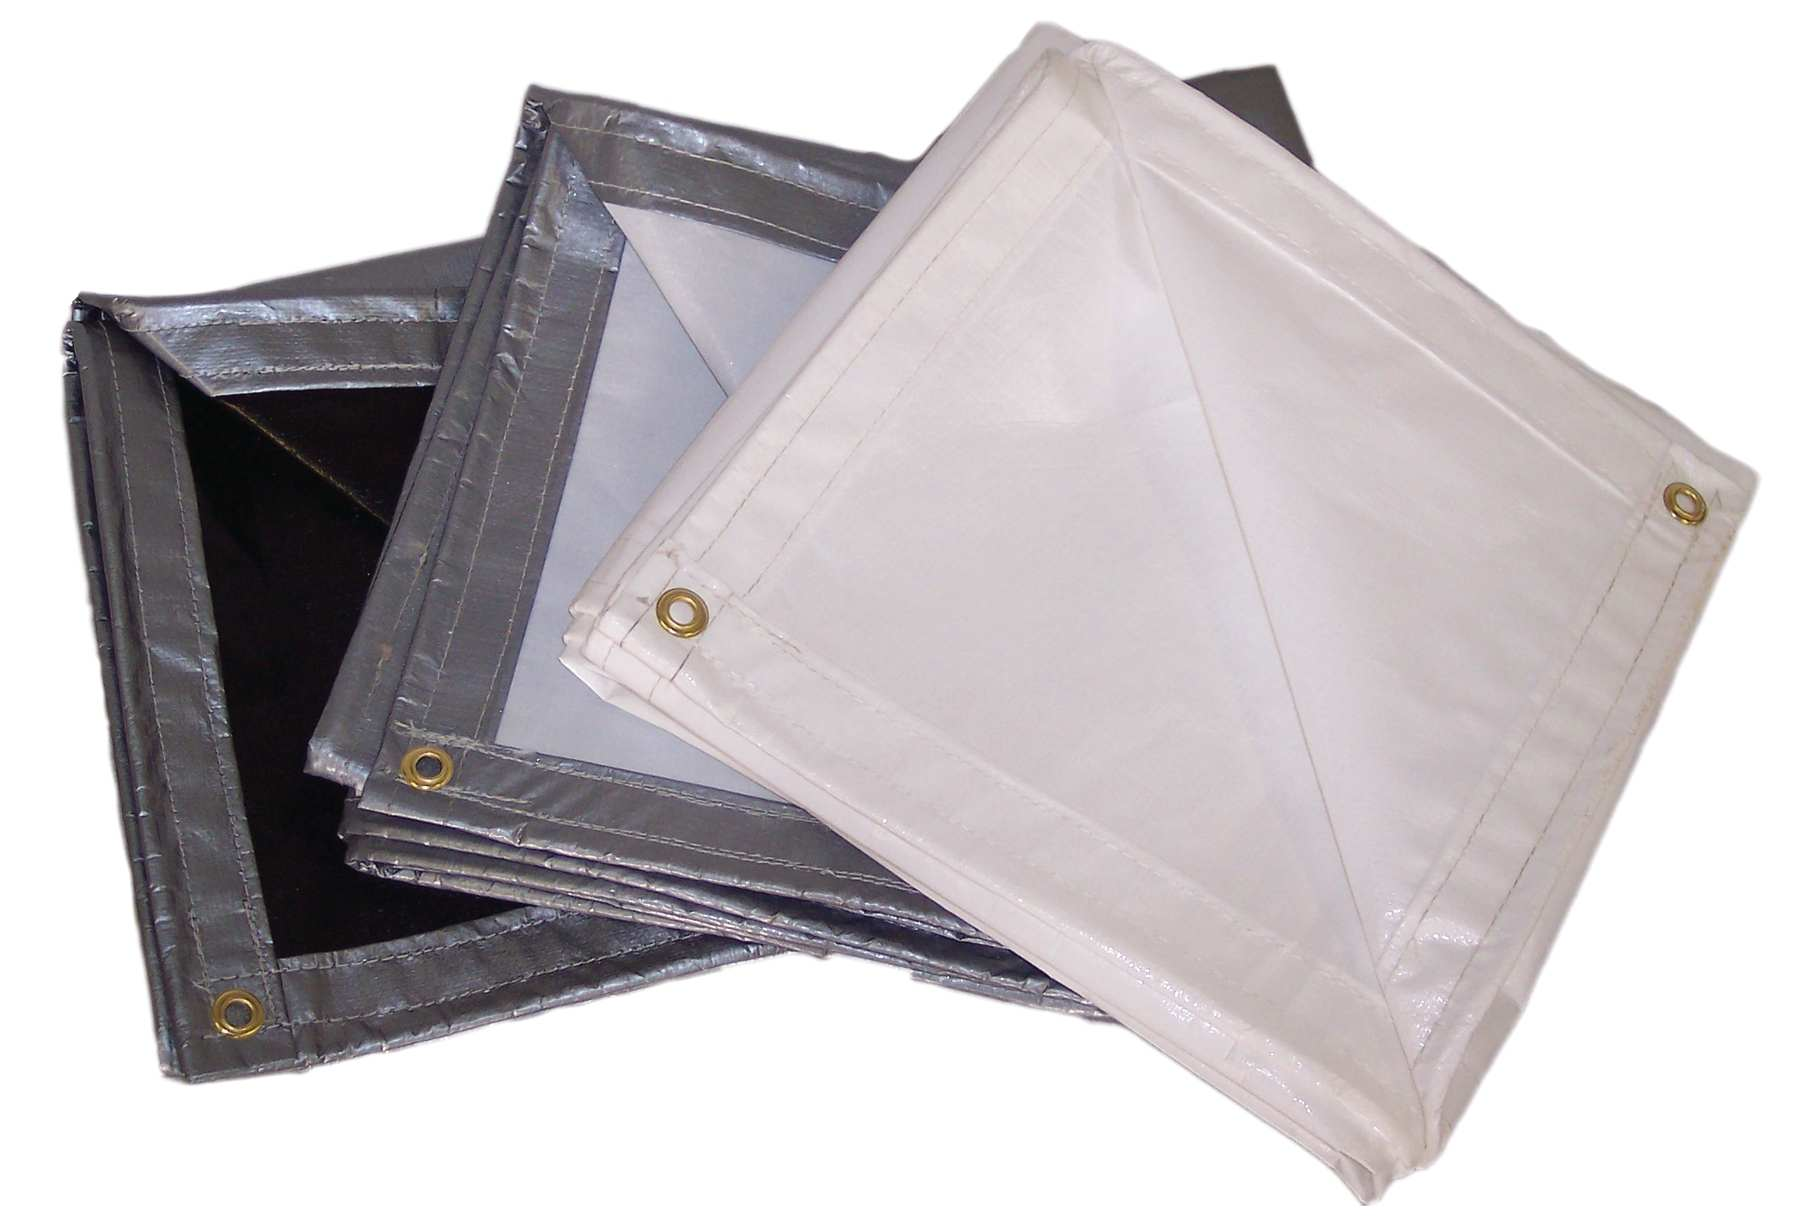 Heavy Duty Reinforced Polyethylene Tarps – 12 mil., 7 oz./sq. Yd.; Size (ft.) 100 x 100